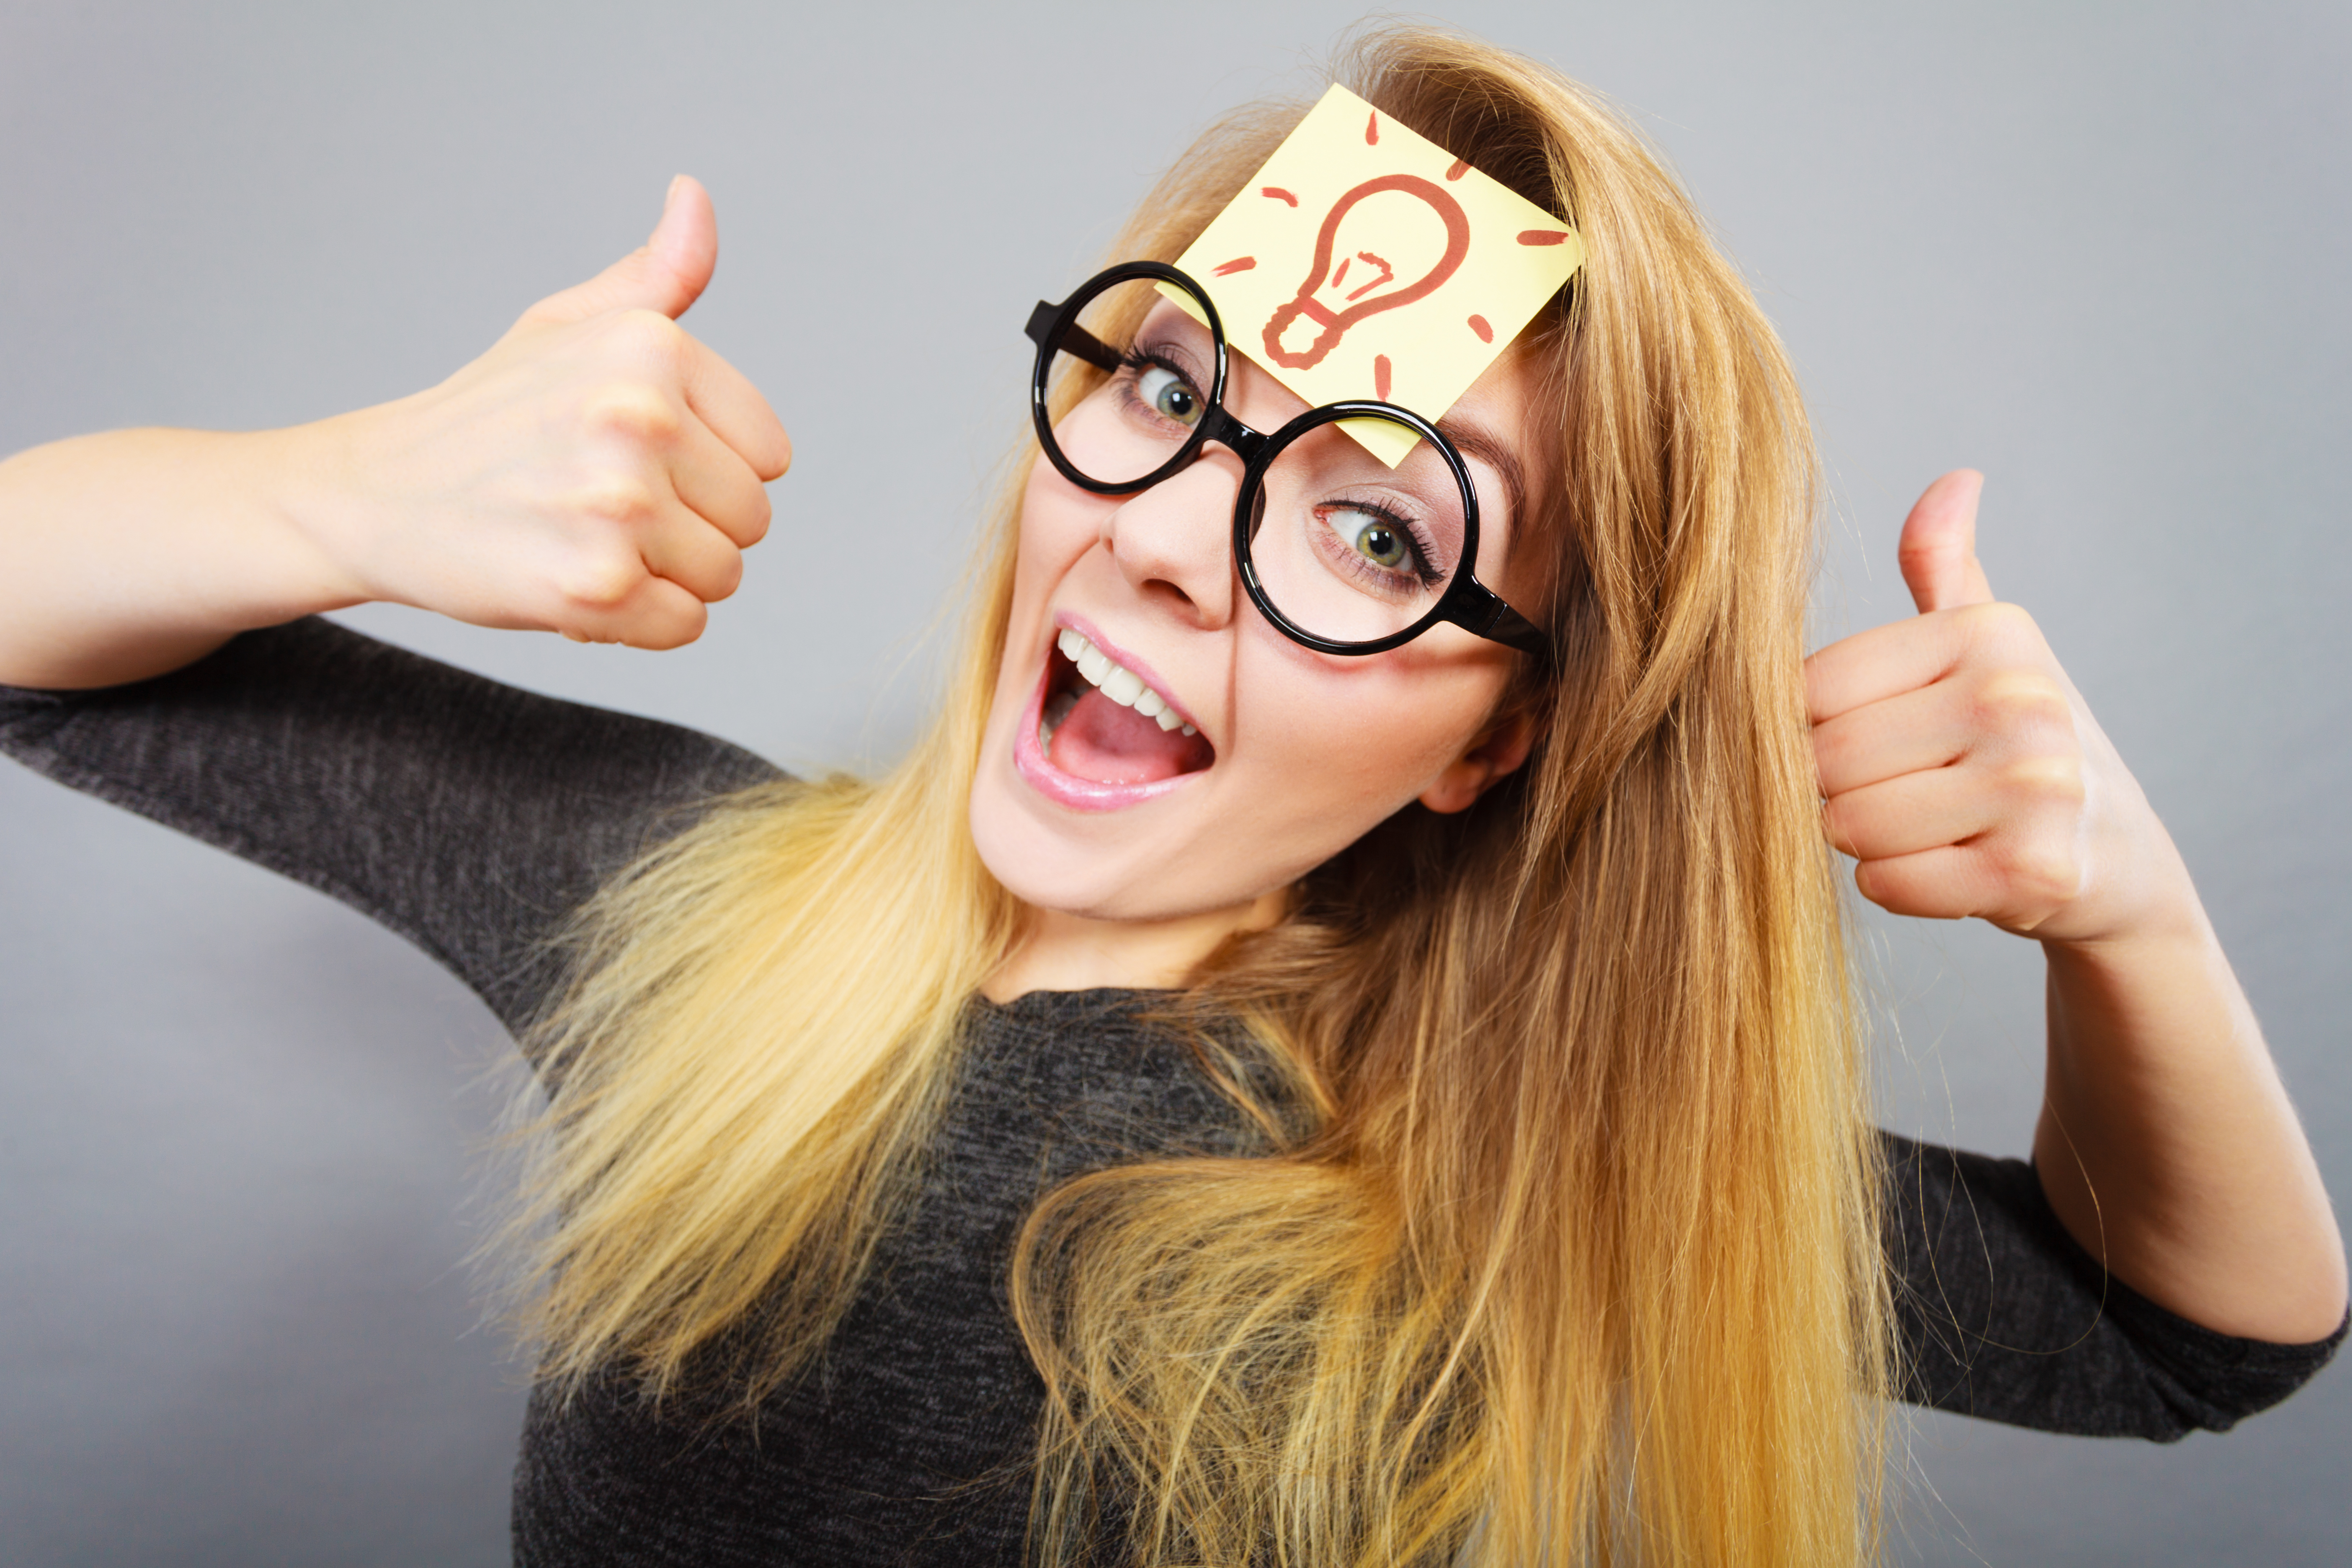 Woman with Post It note on forehead, giving thumbs up